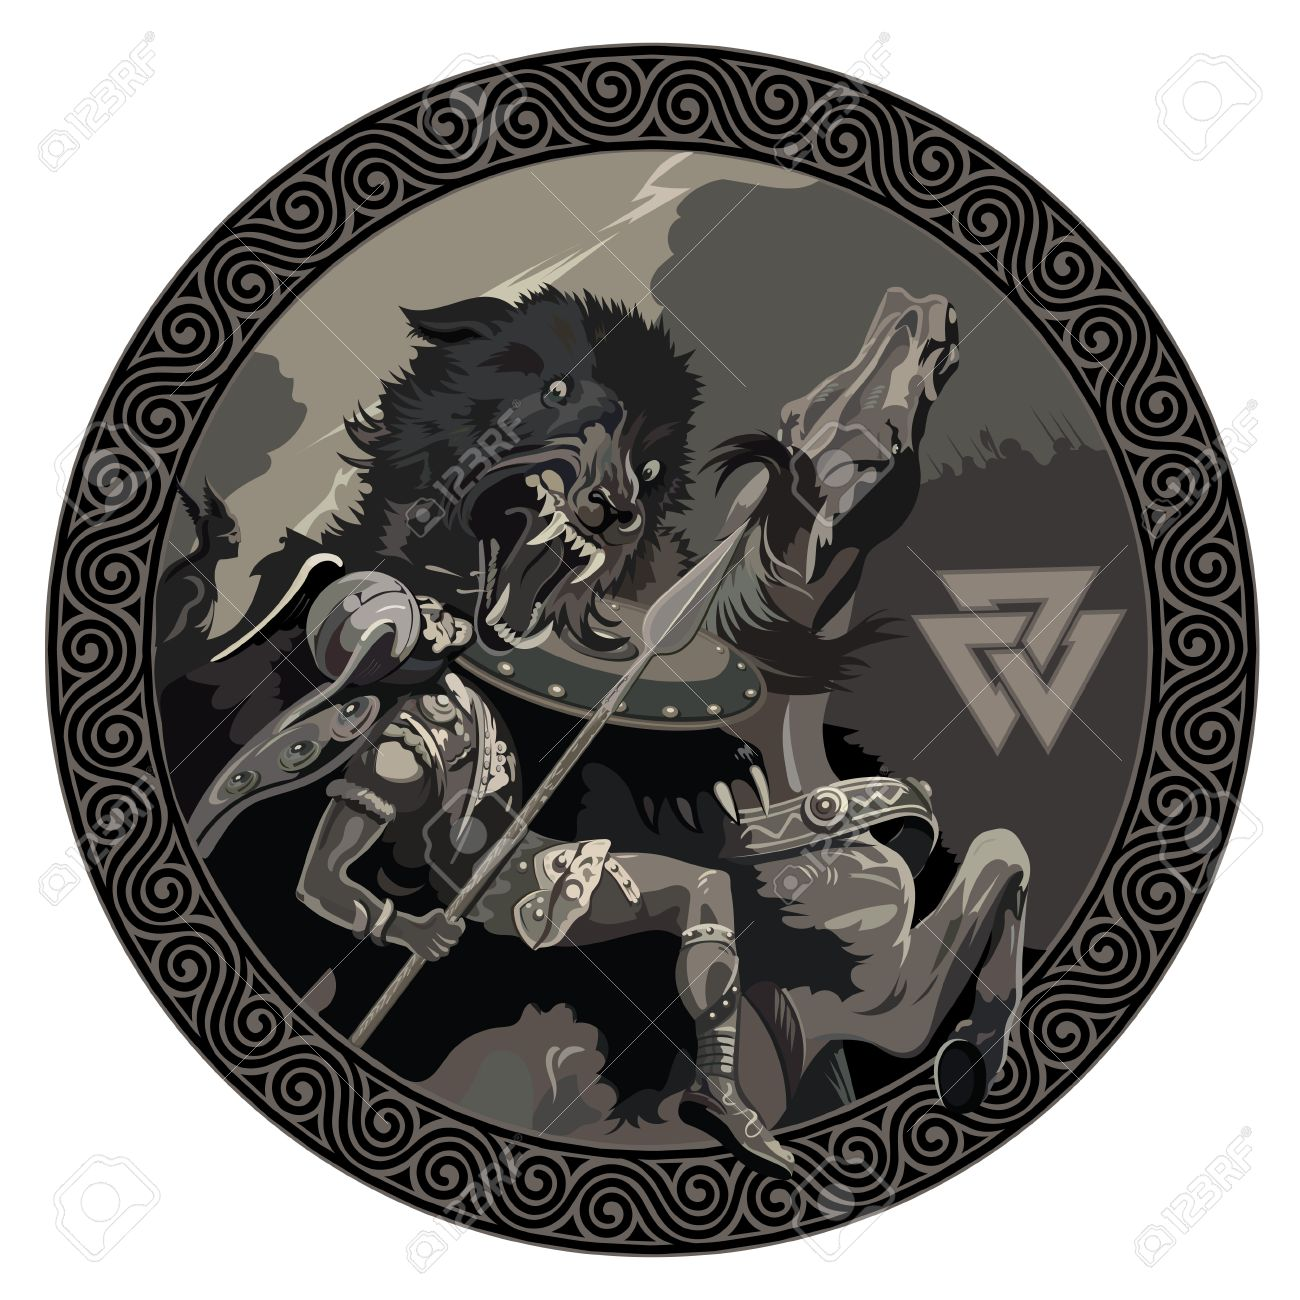 battle of the god odin with the wolf fenrir illustration of